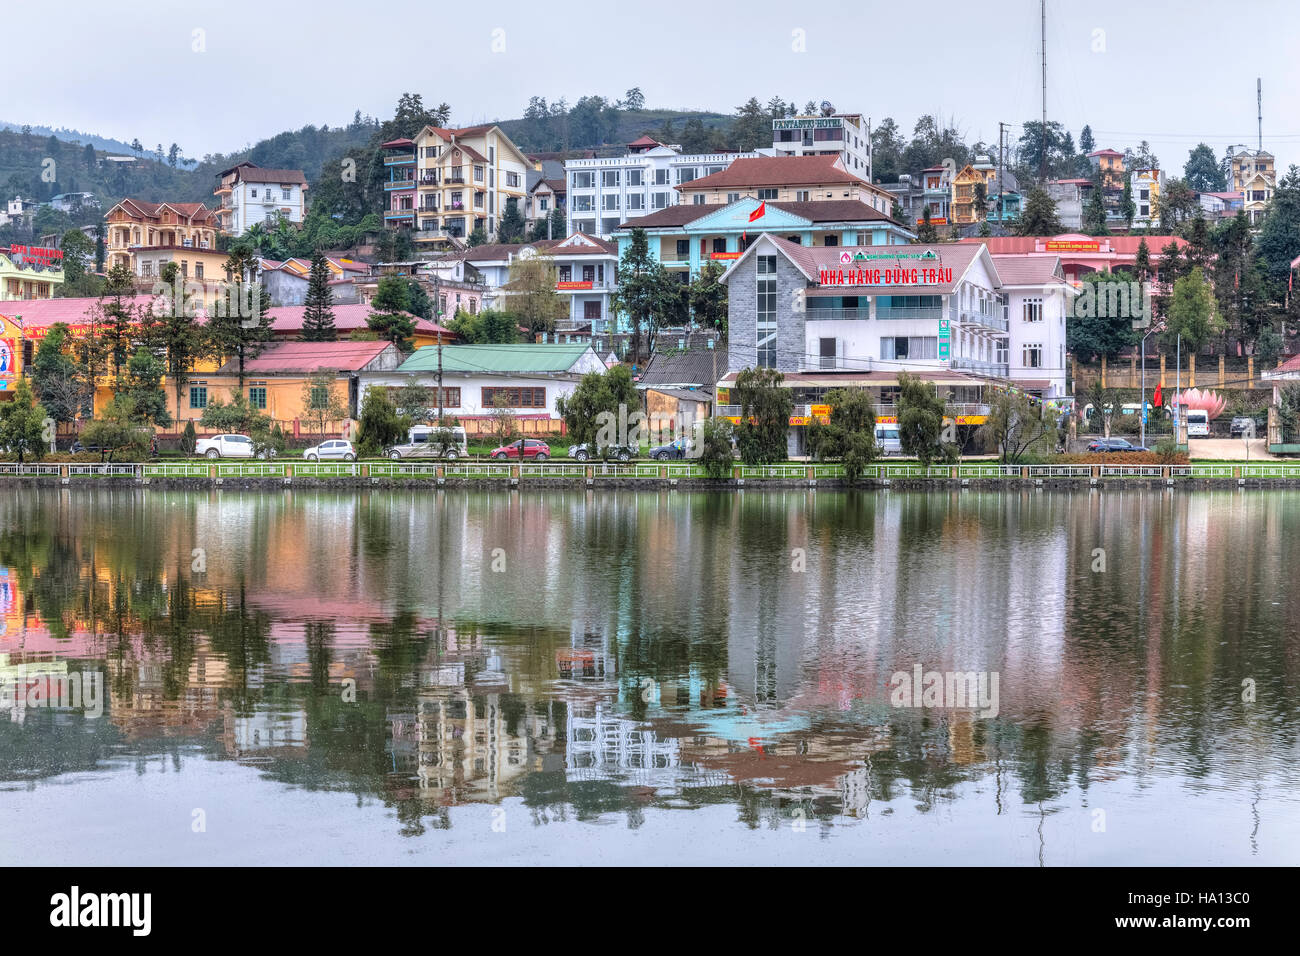 town of Sapa, Lao Cai, Vietnam, Asia Stock Photo